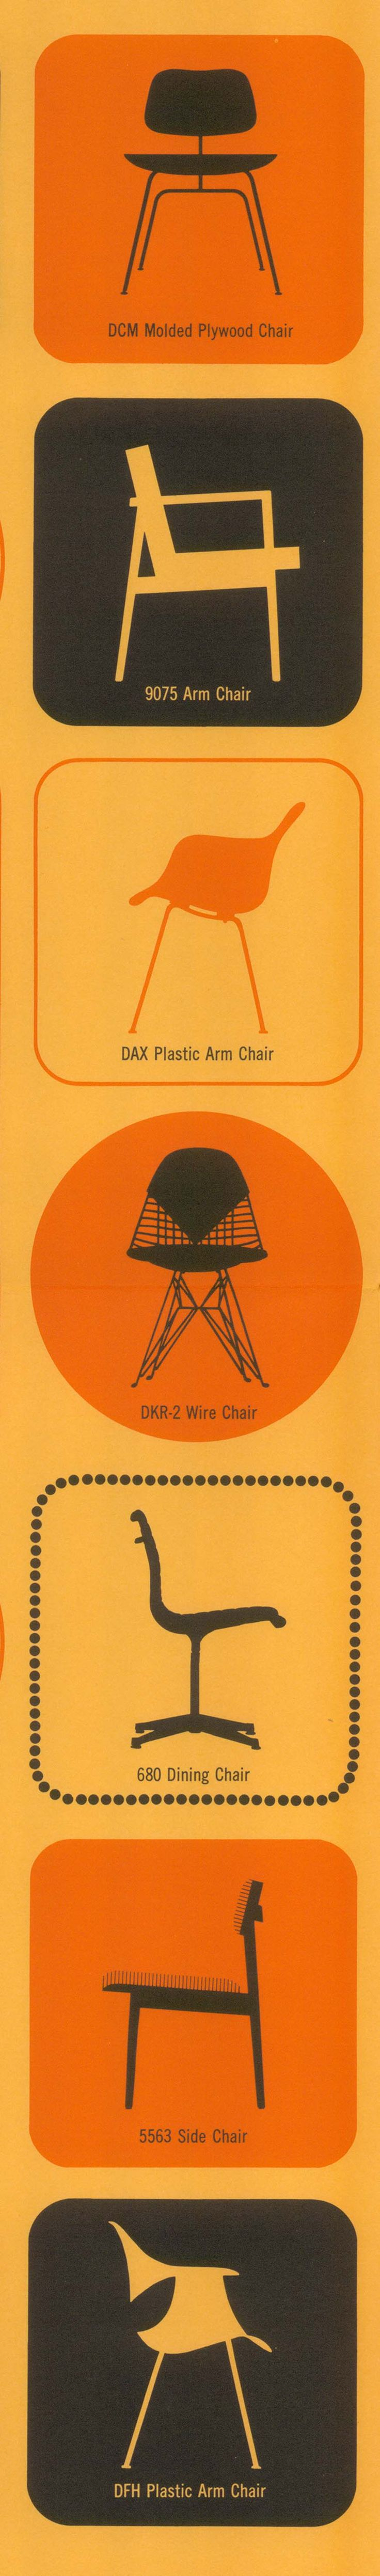 A nice variety of #Eames and #georgenelson chairs from a vintage @hermanmiller poster